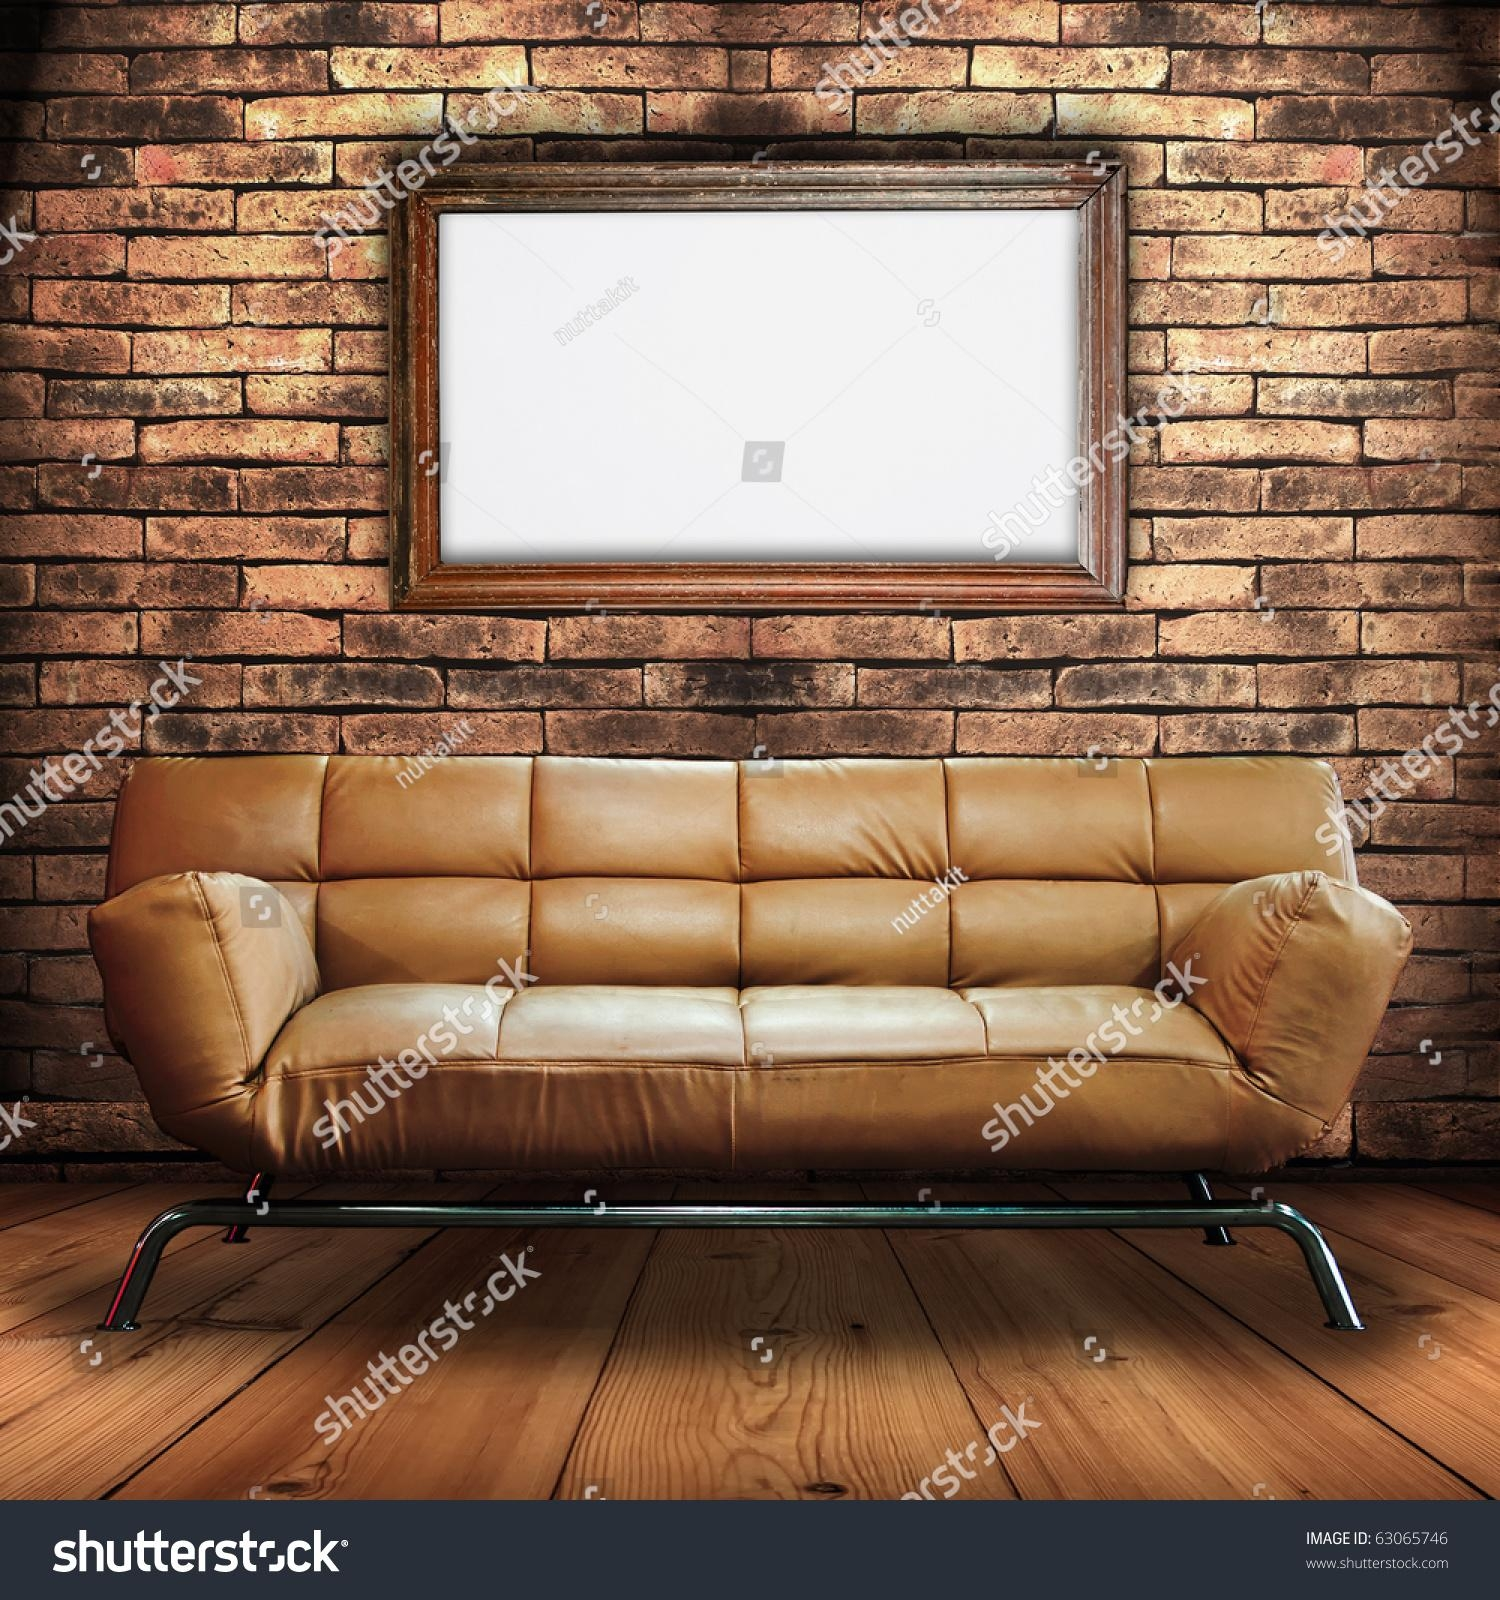 Leather Sofa On Wood Floor Wood Stock Photo 63065746 – Shutterstock In The Brick Leather Sofa (View 19 of 20)